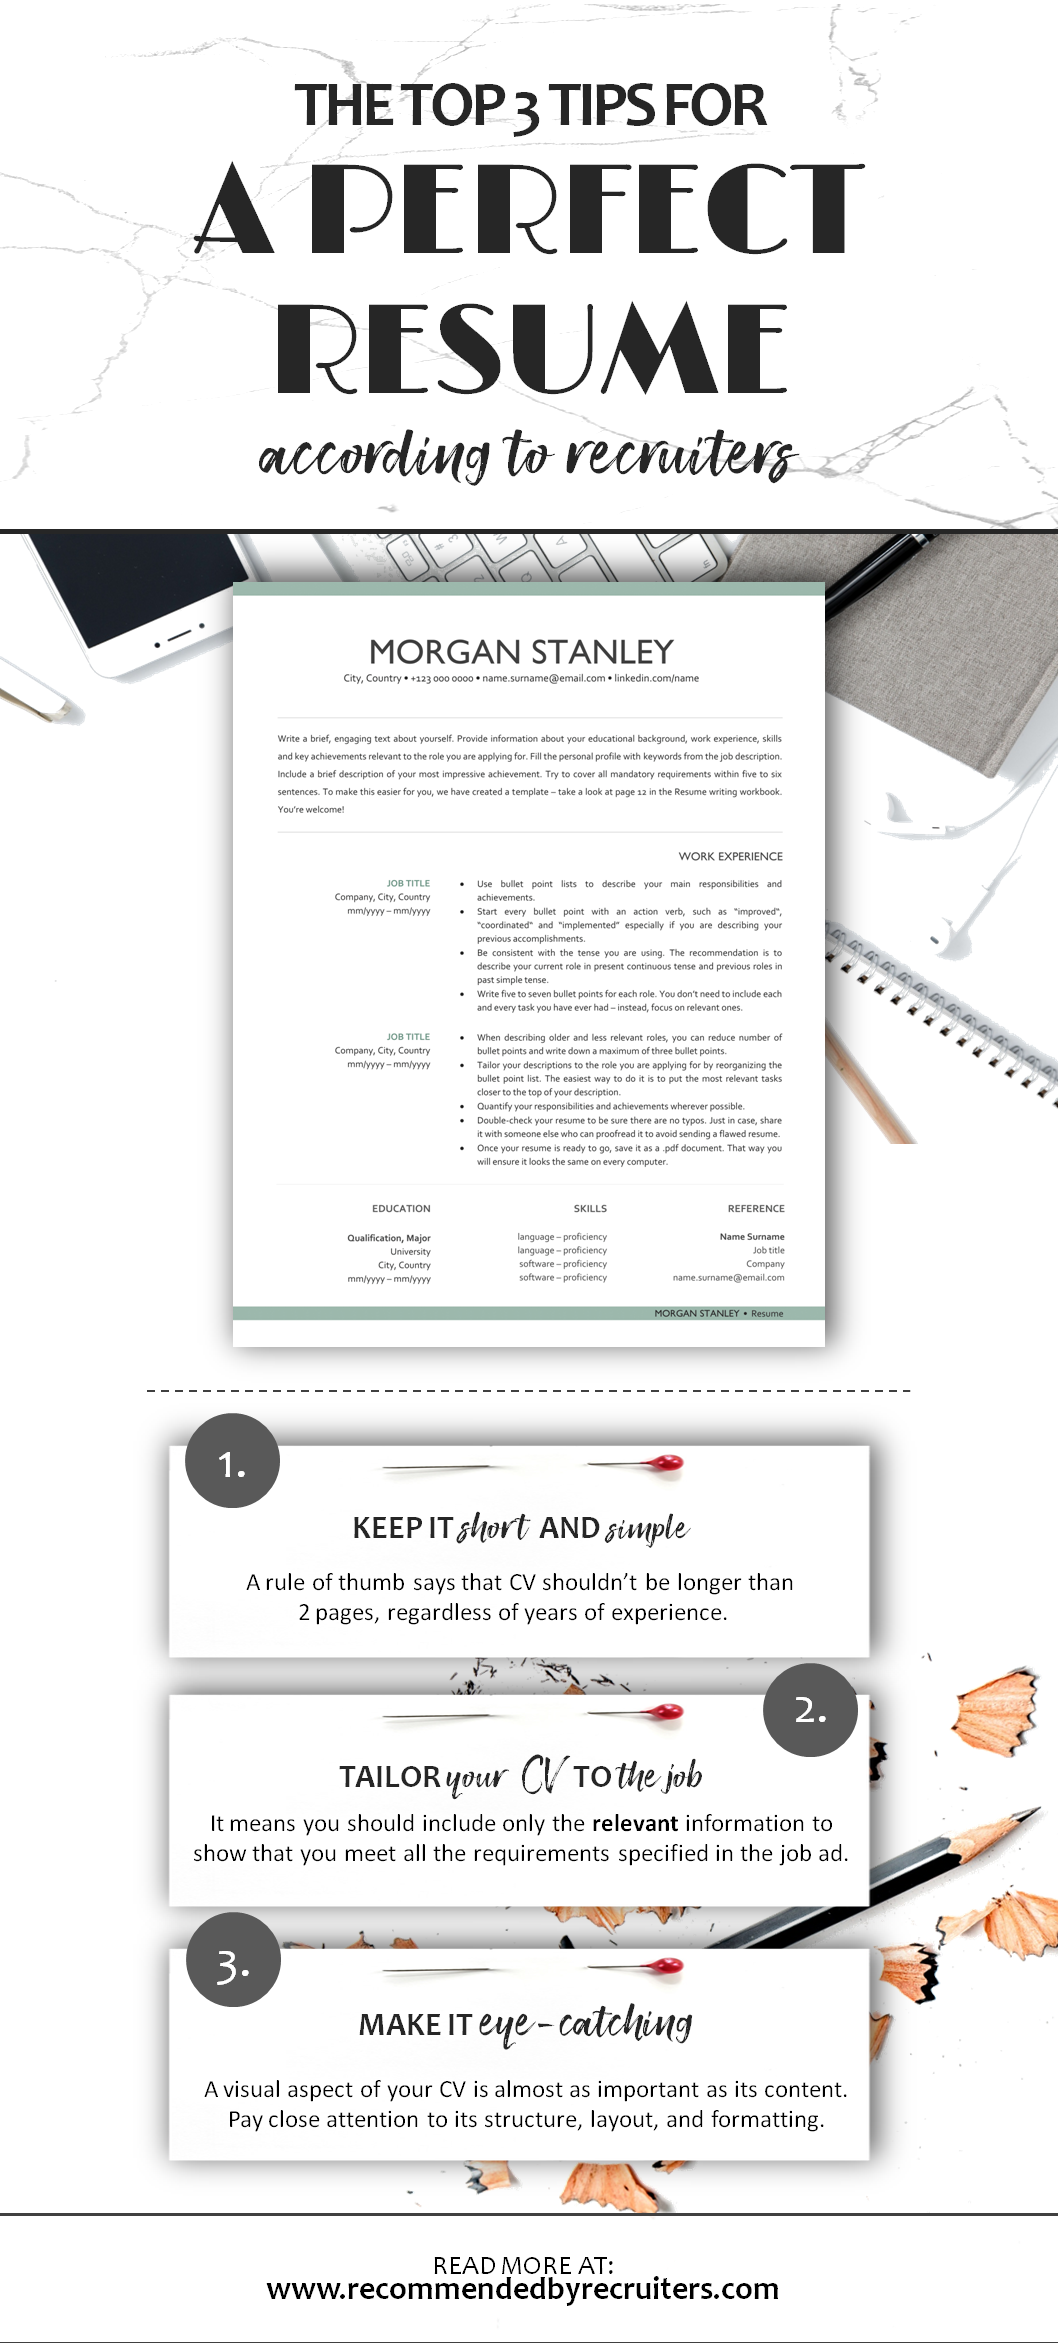 Resume Writing Tips Top 3 Tips For A Perfect Resume Resume Writing Tips Resume Tips Resume